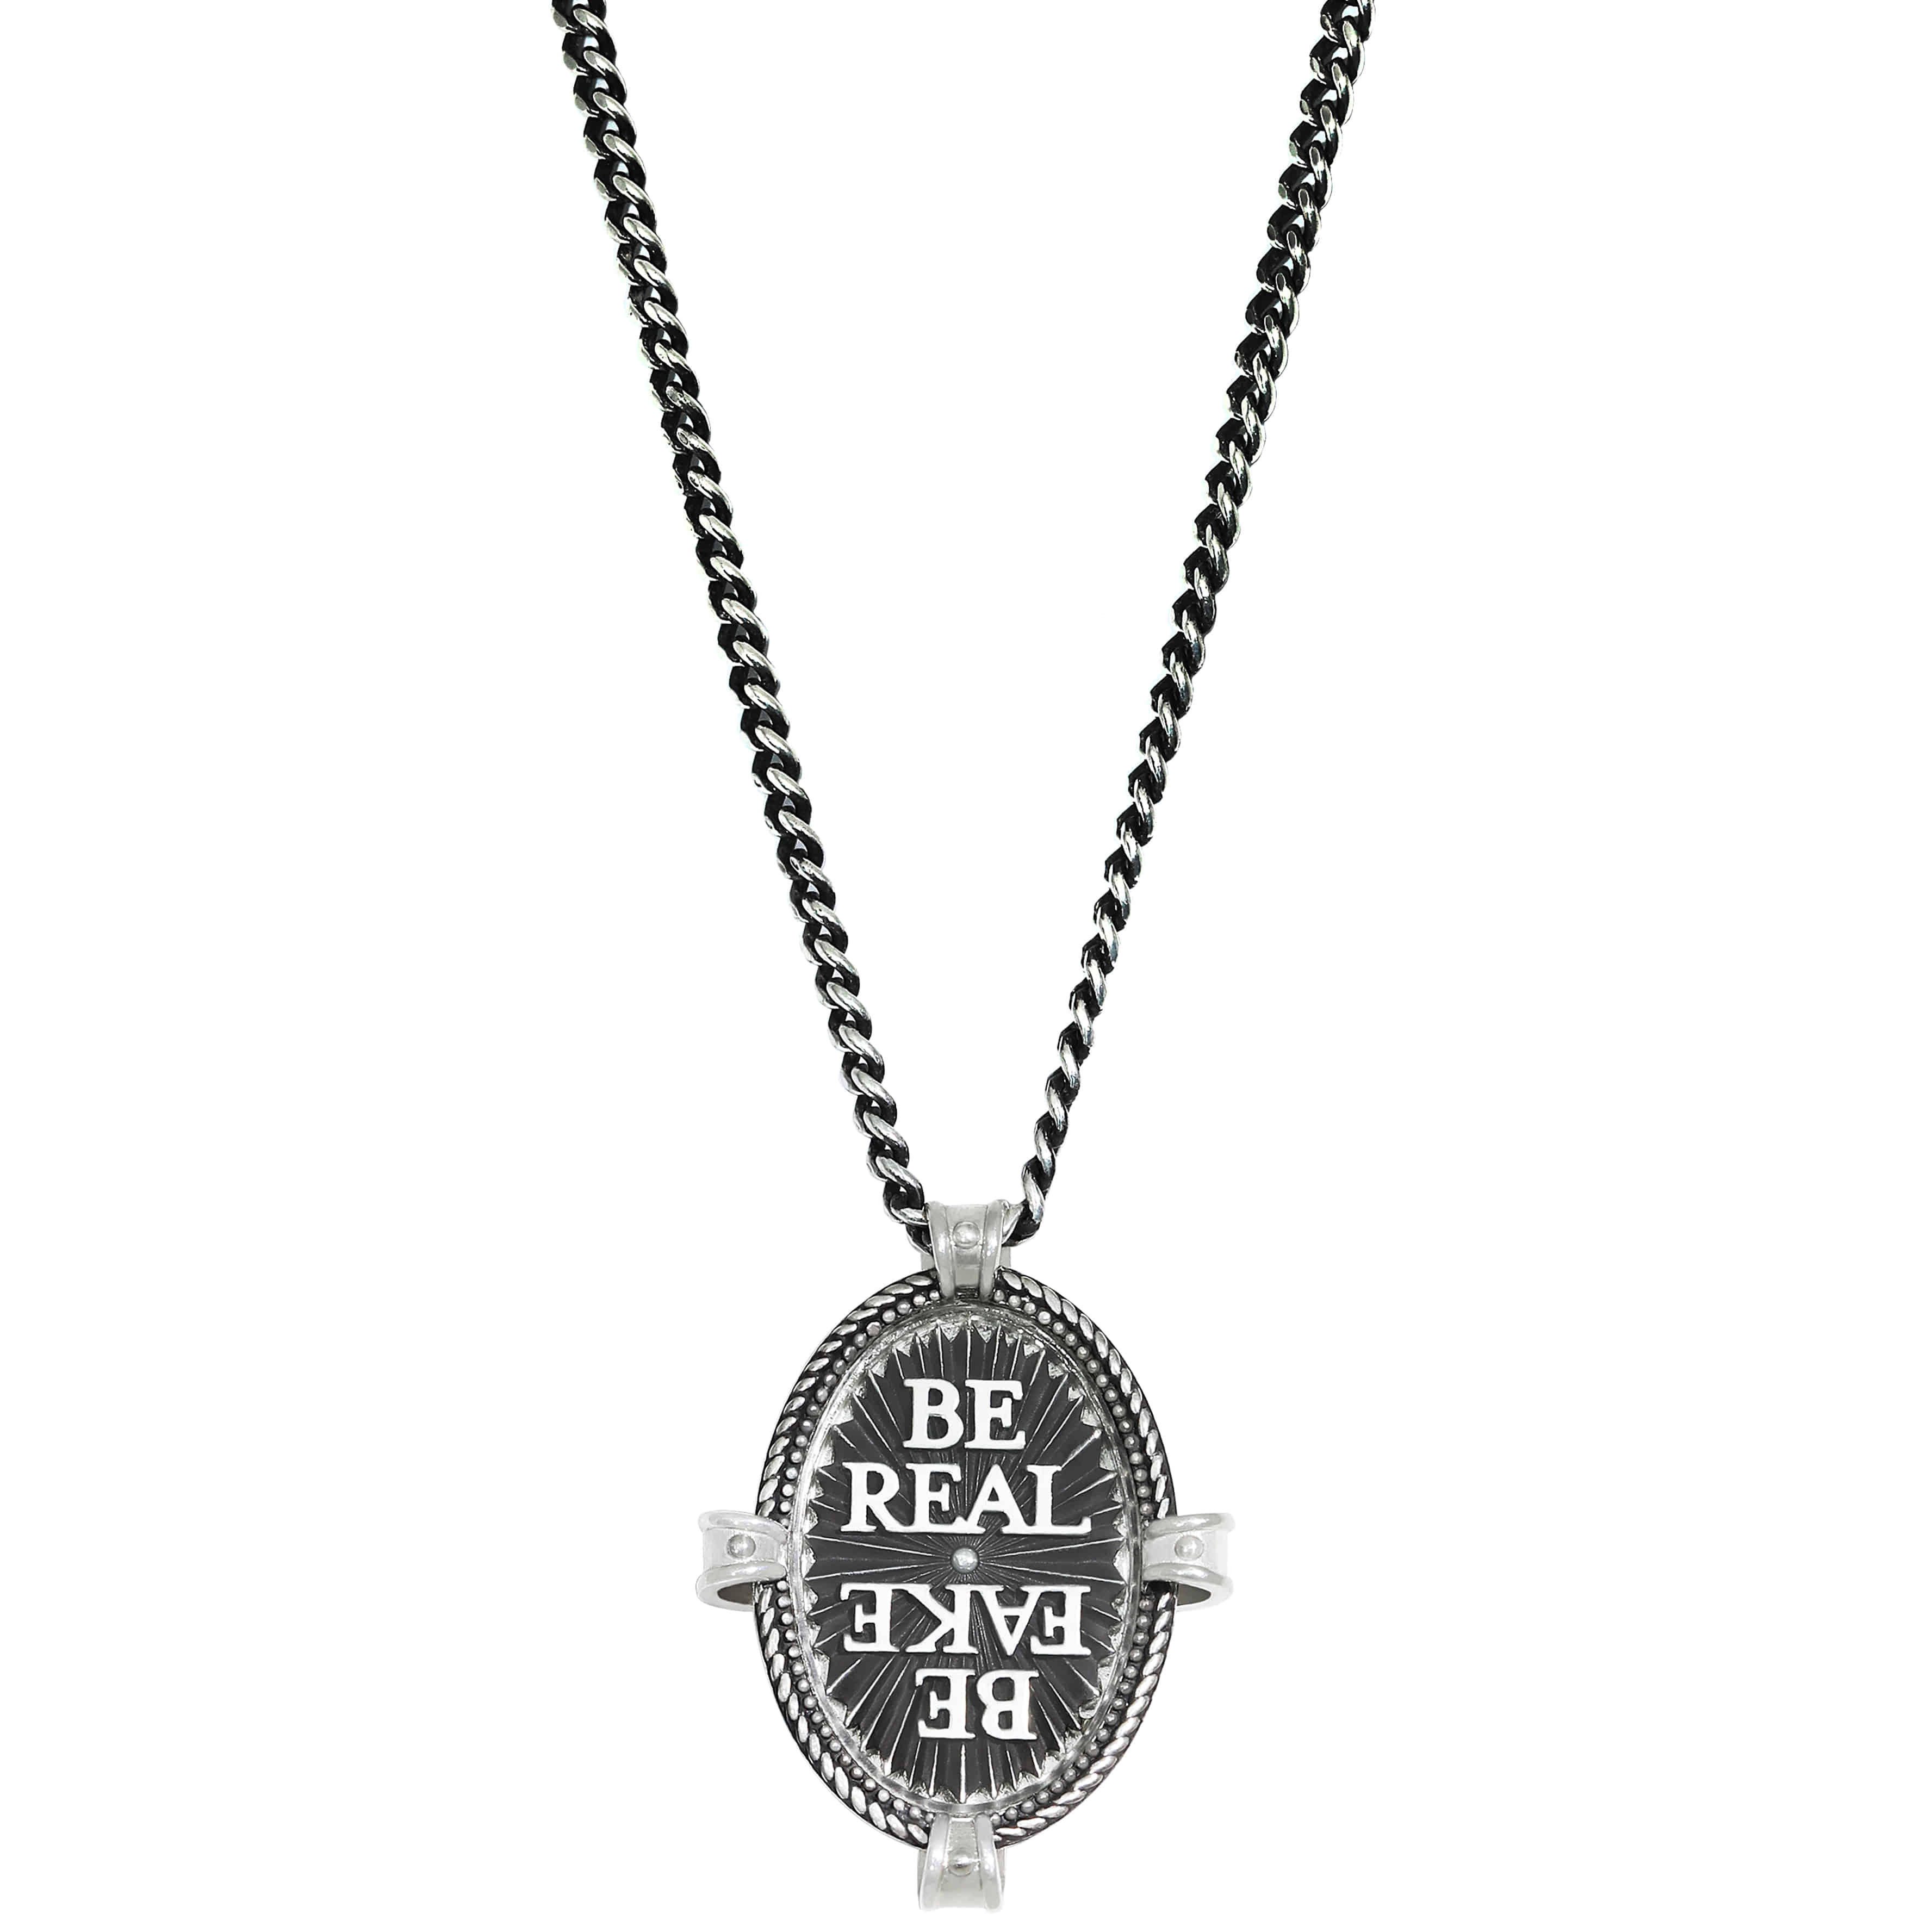 'BE REAL BE FAKE' Clear 3way Necklace